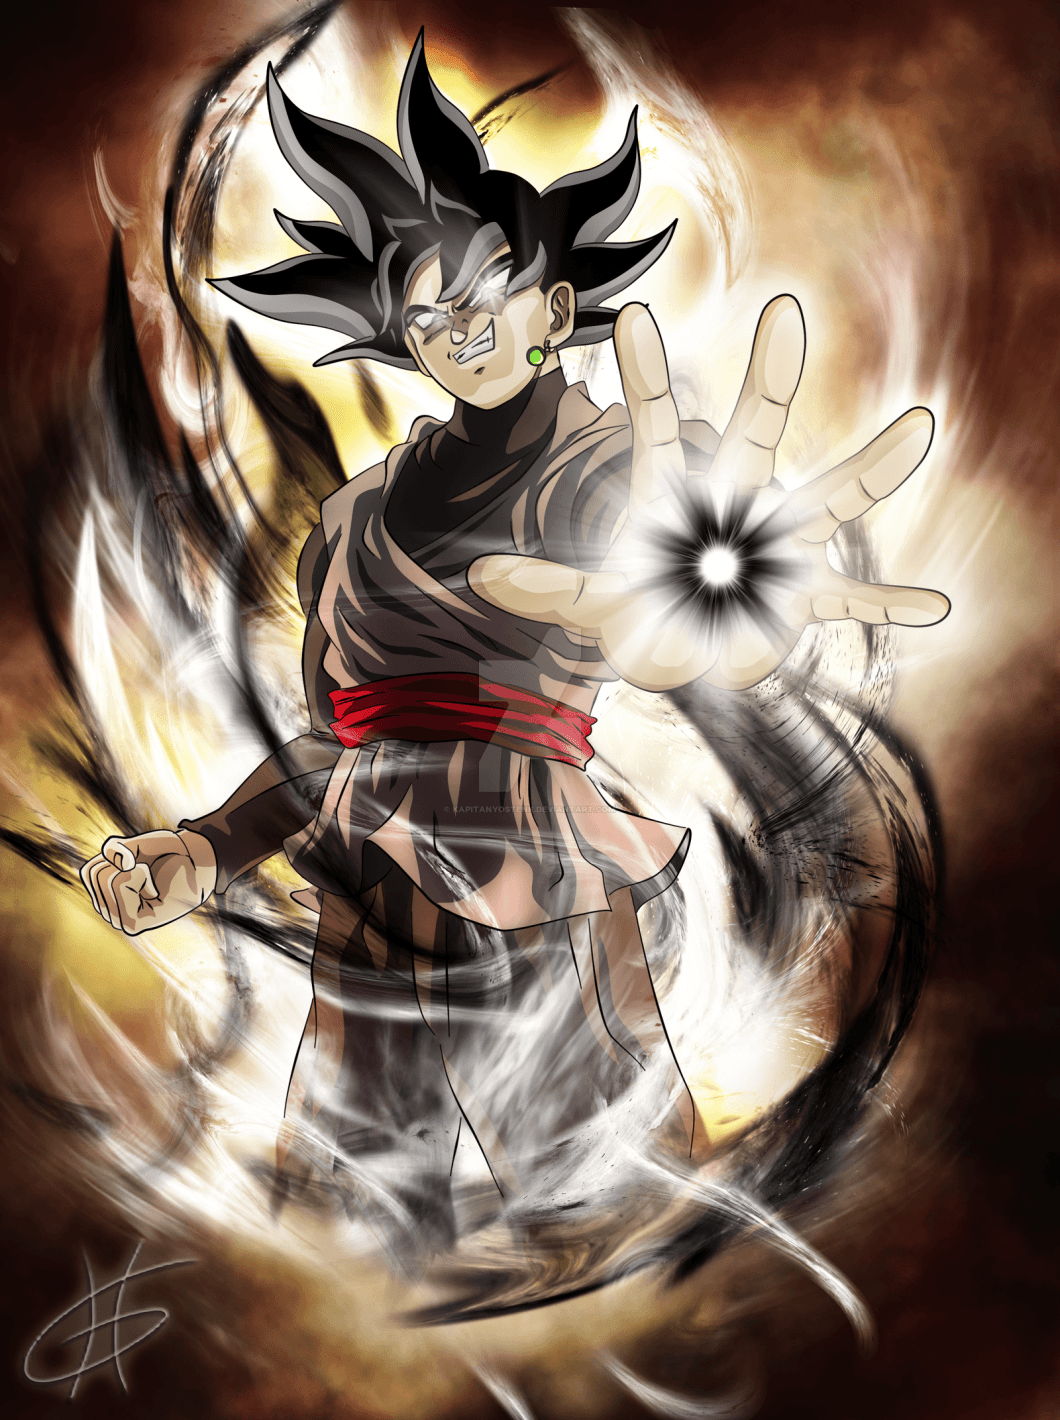 11 Black Goku Wallpaper 4k For iPhone, Android and Desktop ...